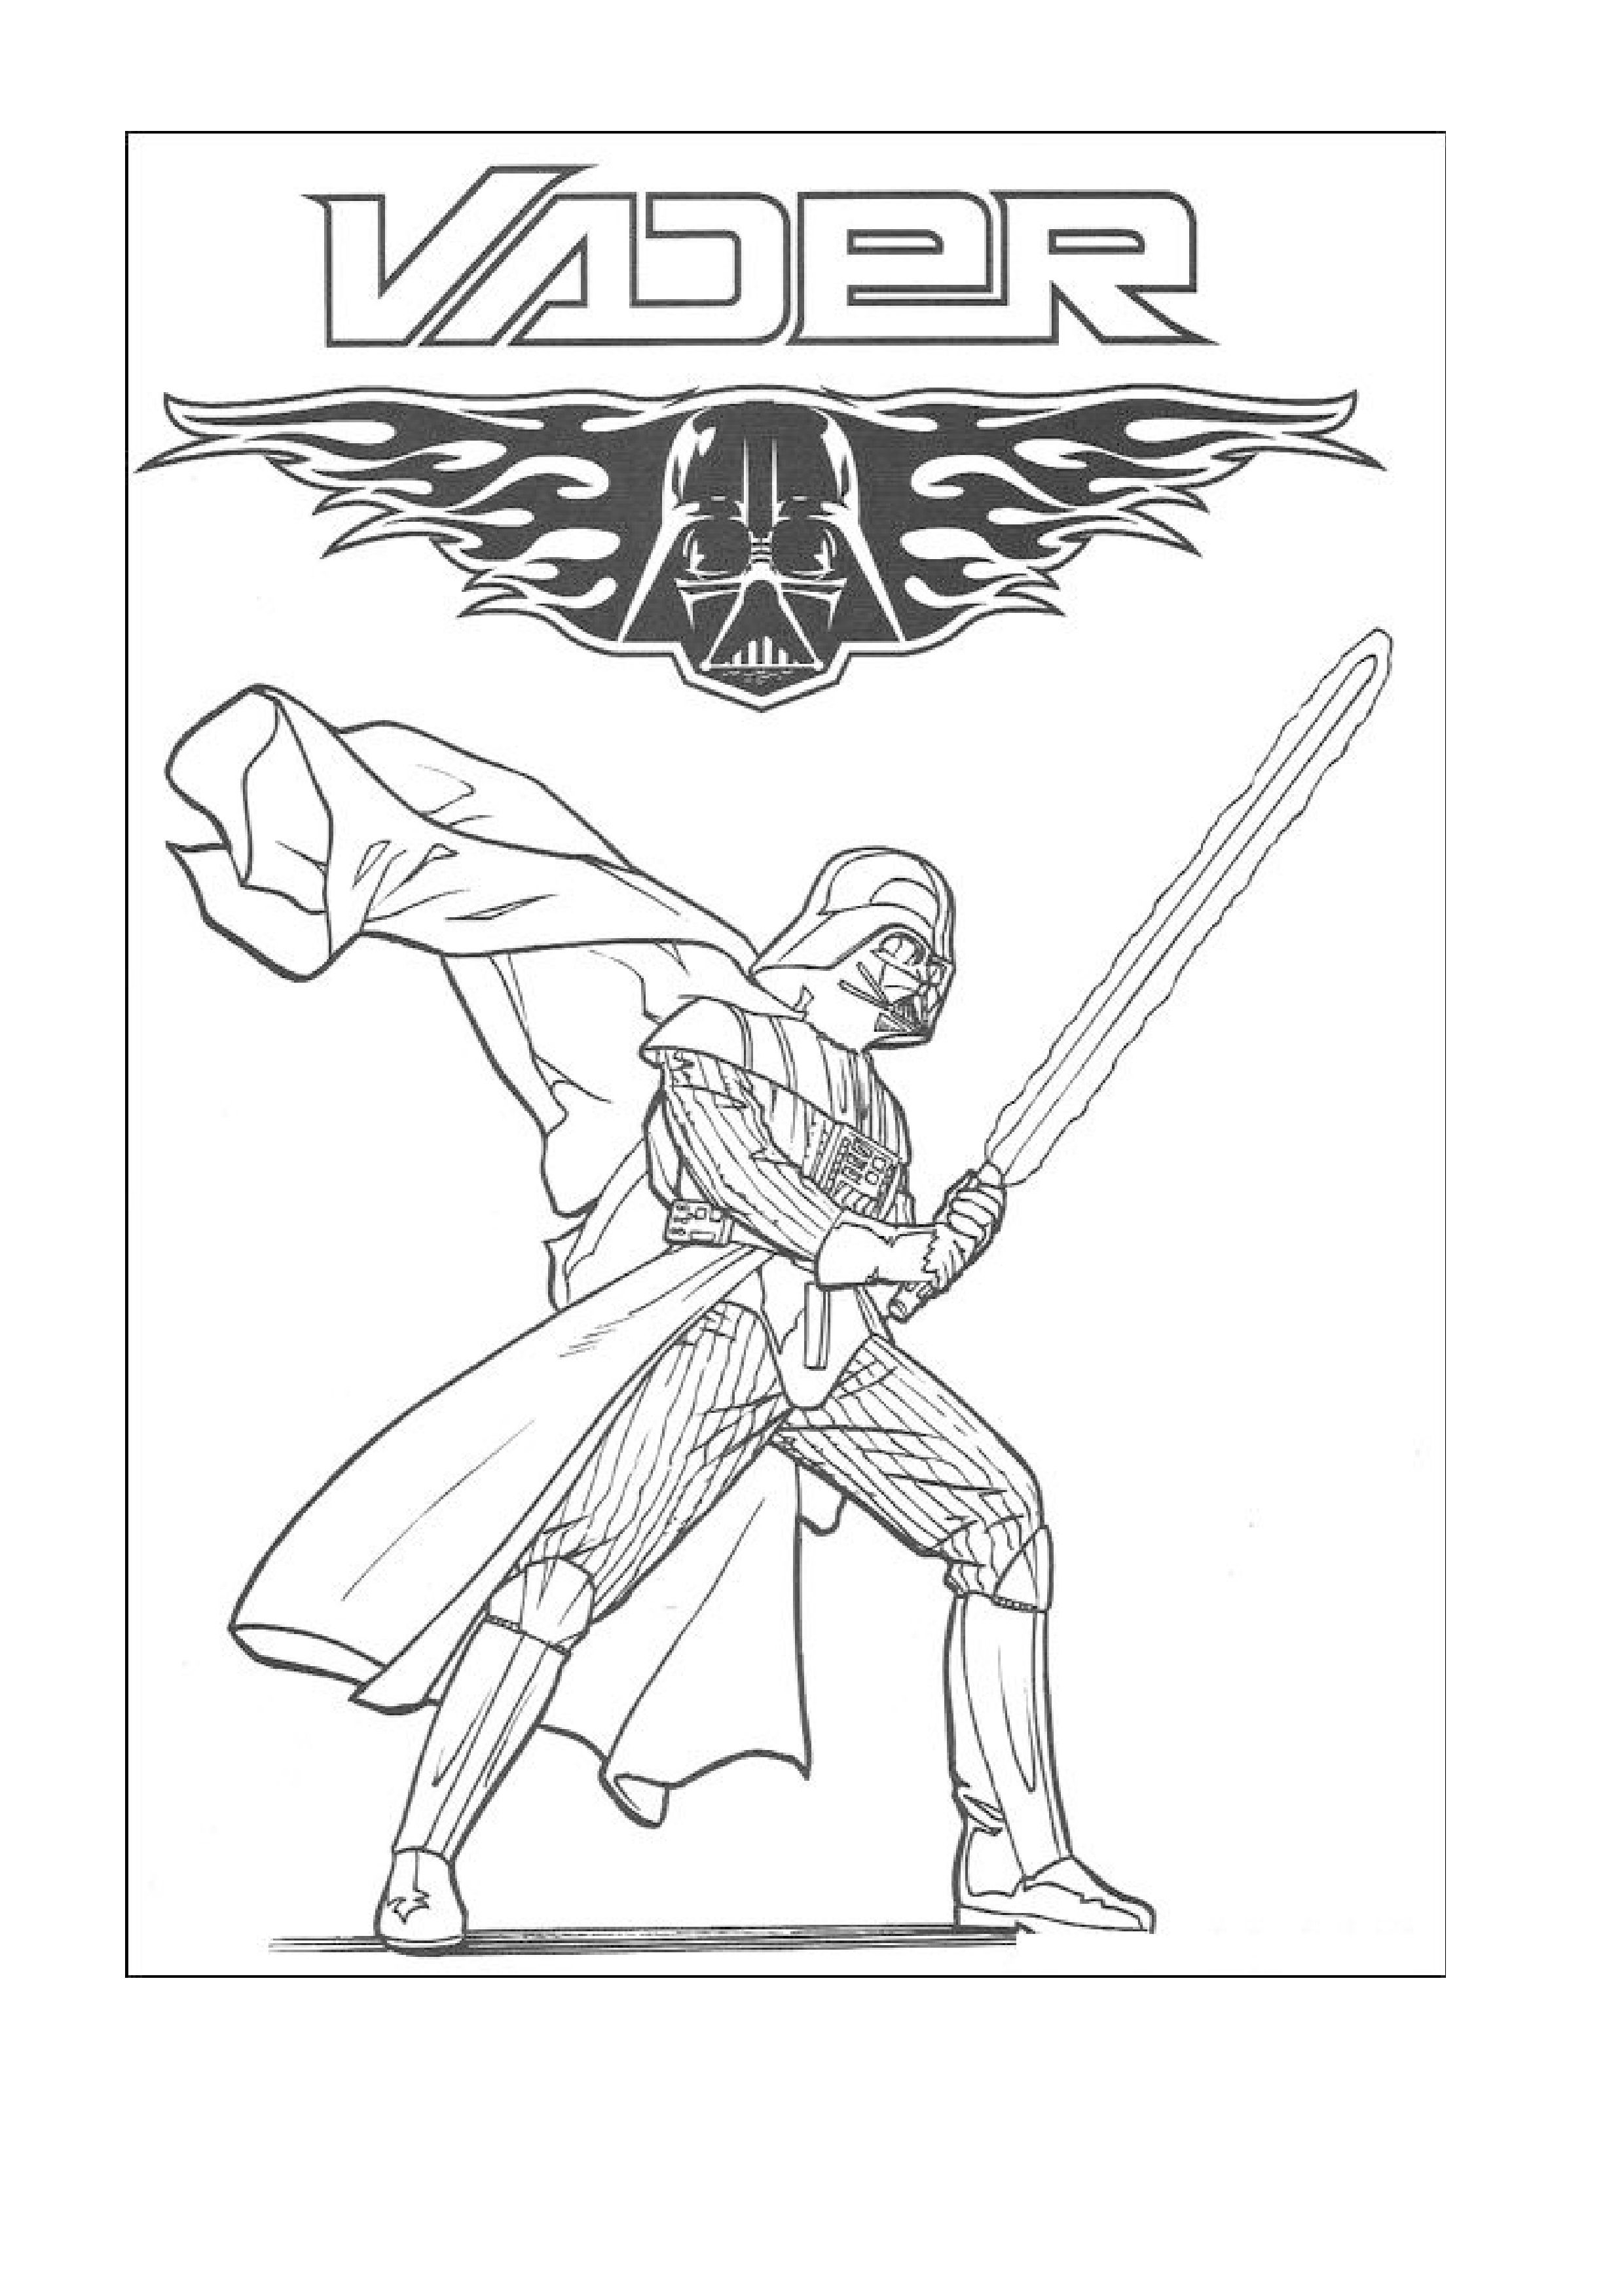 star wars coloring pages darth vader darth vader coloring pages to download and print for free wars star pages darth vader coloring